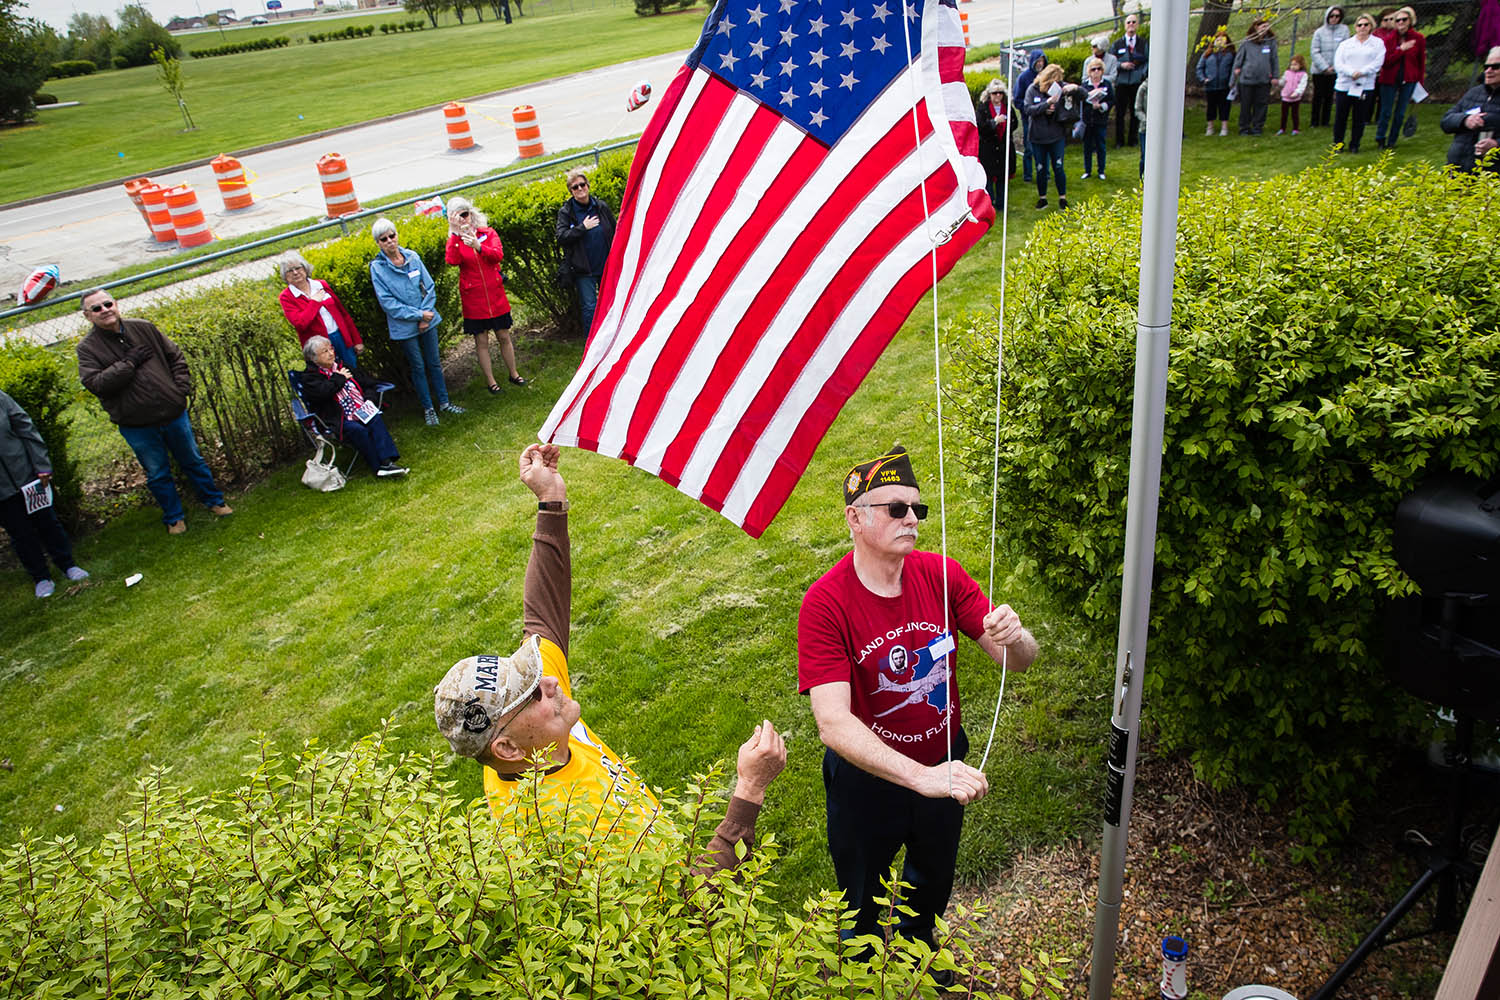 Veterans Weldon Stetter, left, and David Taft raise the U.S. flag on a new flag pole at Pat Kuster's Springfield home during a dedication ceremony Sunday, April 29, 2019. Kuster, a volunteer with Land of Lincoln Honor Flight, was the guardian for the two veterans on their trip to visit their memorials in Washington, D.C., and the host of the party that included prayers, a bugler and the singing of the national anthem and fundraising for the organization. [Ted Schurter/The State Journal-Register]